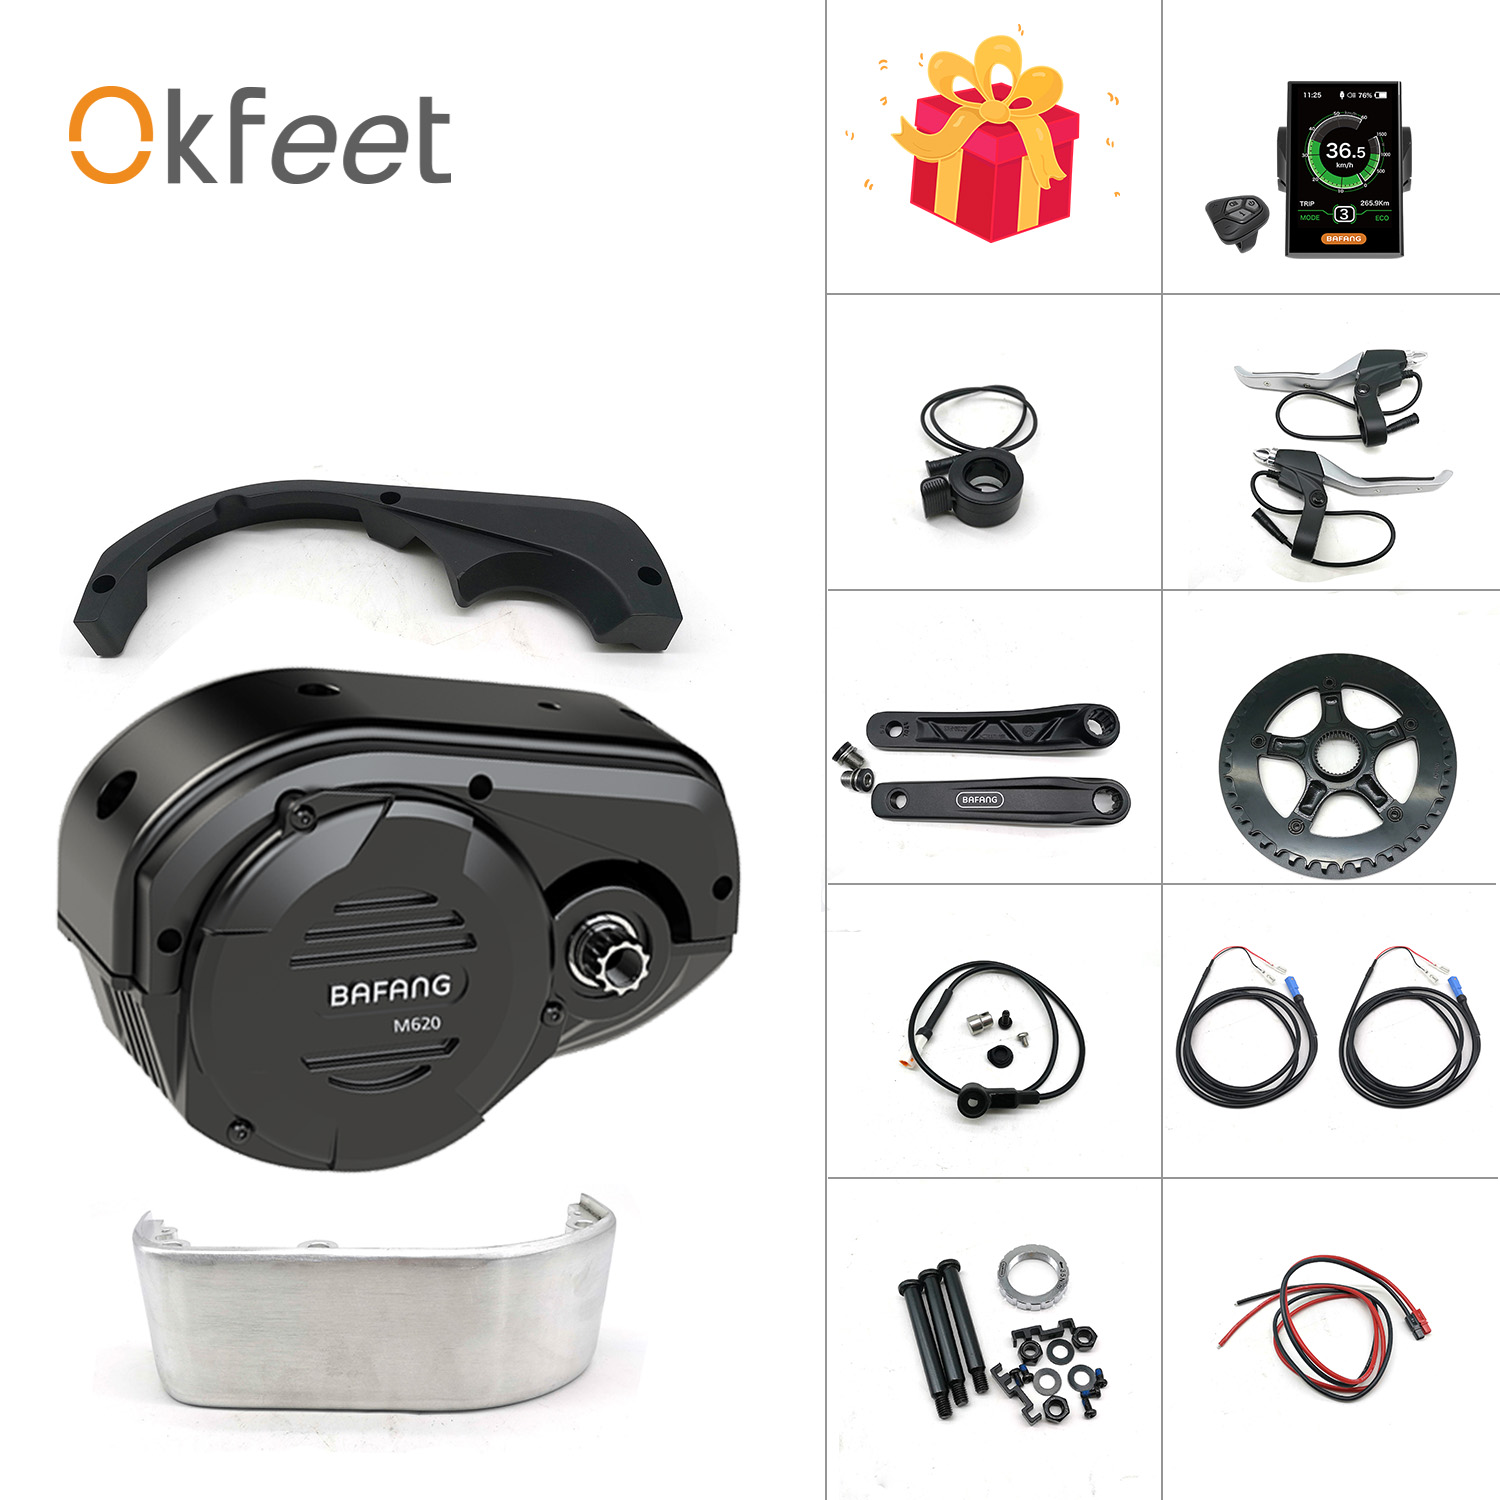 Okfeet Bafang G510 48V 1000W 8fun M620 Mid Drive Motor Kit E Bike Electric Cargo Bike Bicycle Conversion Kit For Ebike